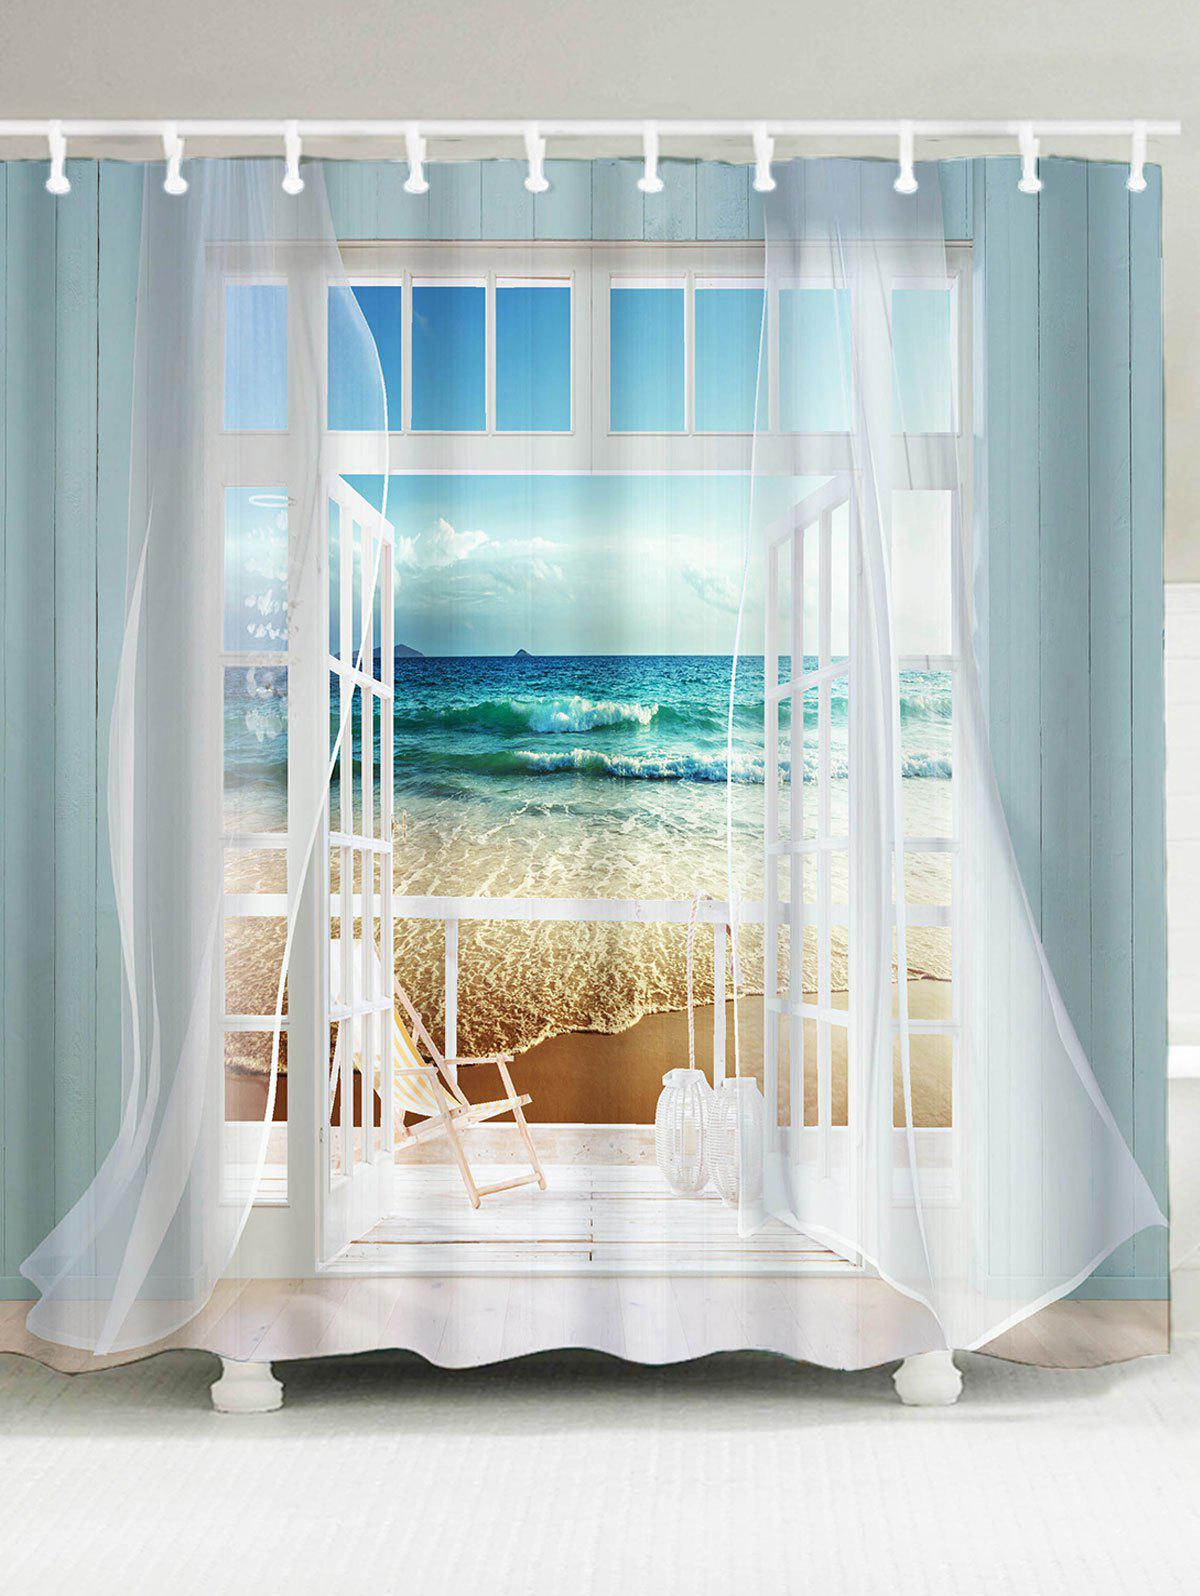 2018 Waterproof Window Frame Ocean Scene Printing Shower